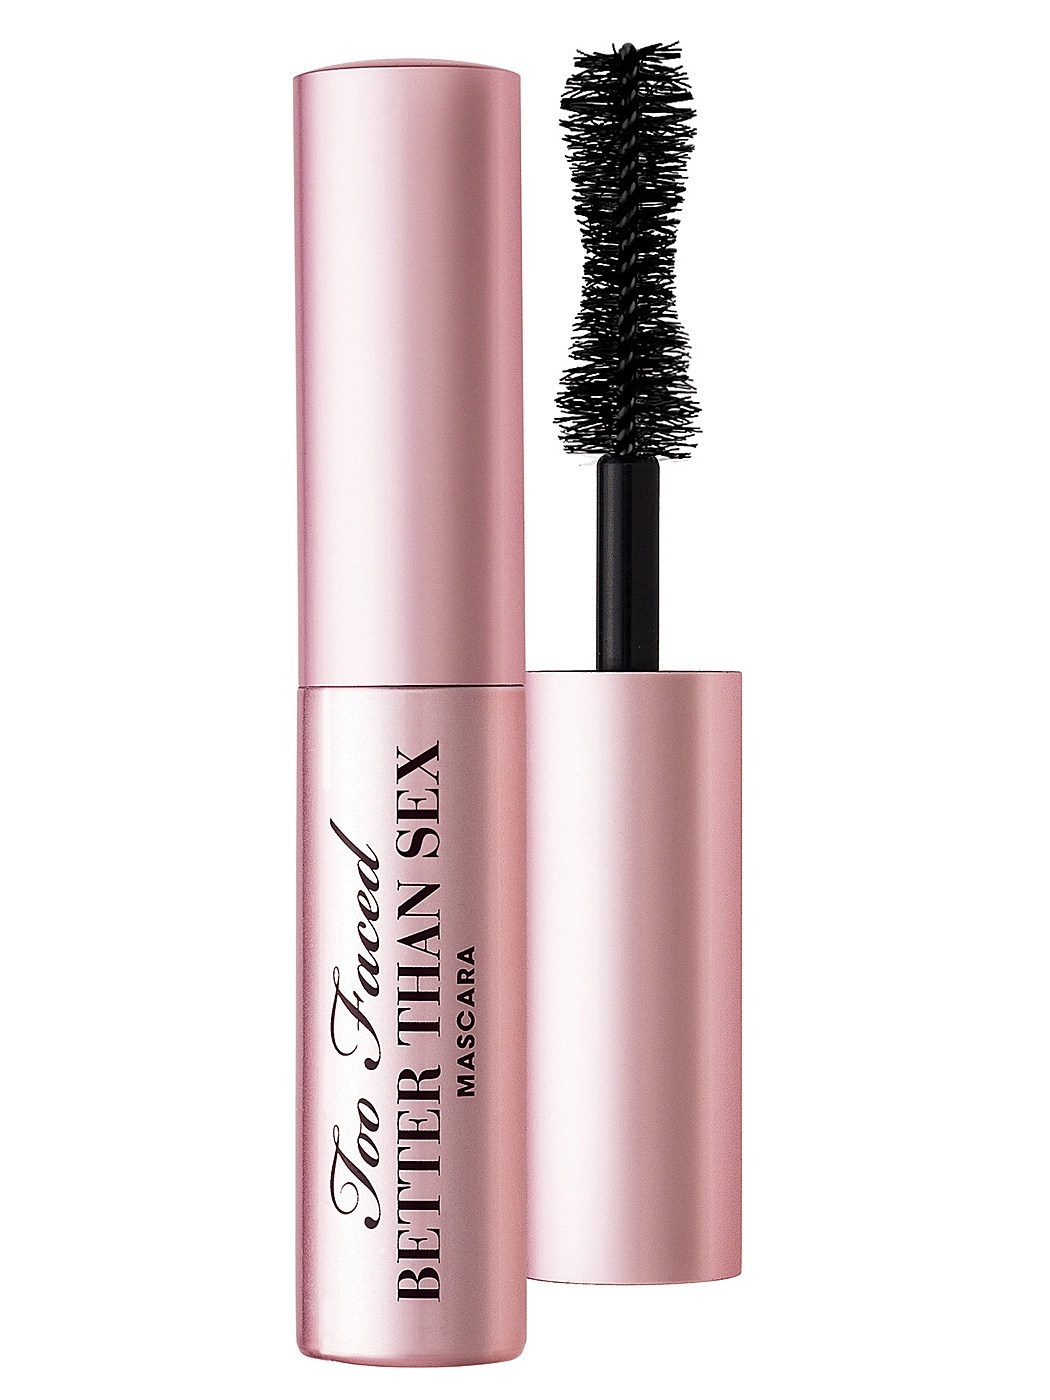 Too Faced better than sex mascara travel size.jpg